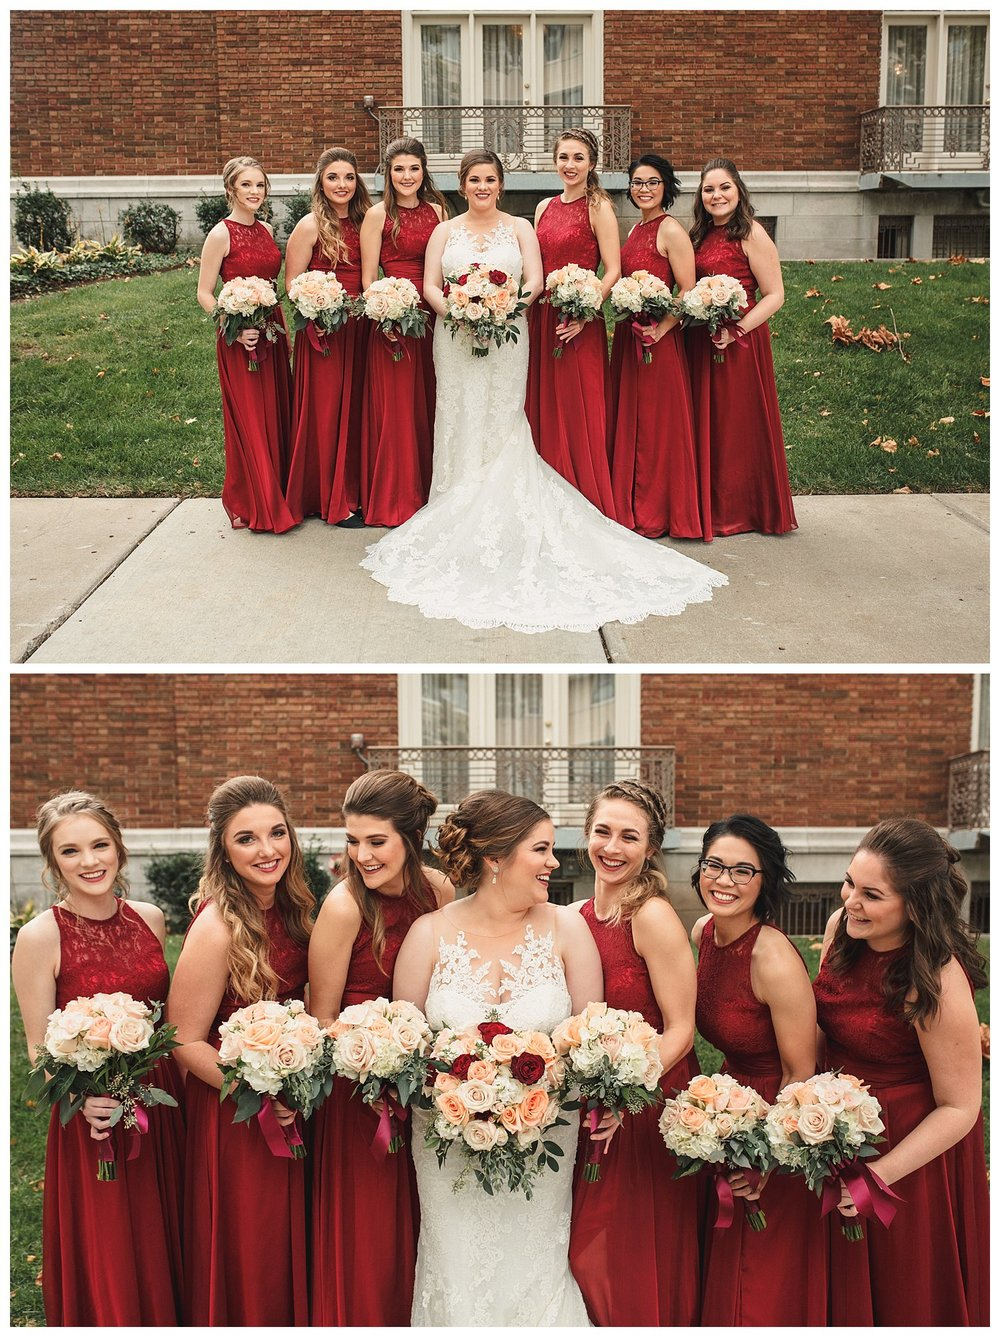 Kelsey_Diane_Photography_Loose_Mansion_Wedding_Photography_Kansas_City_Victor_Lyndsay_0128.jpg